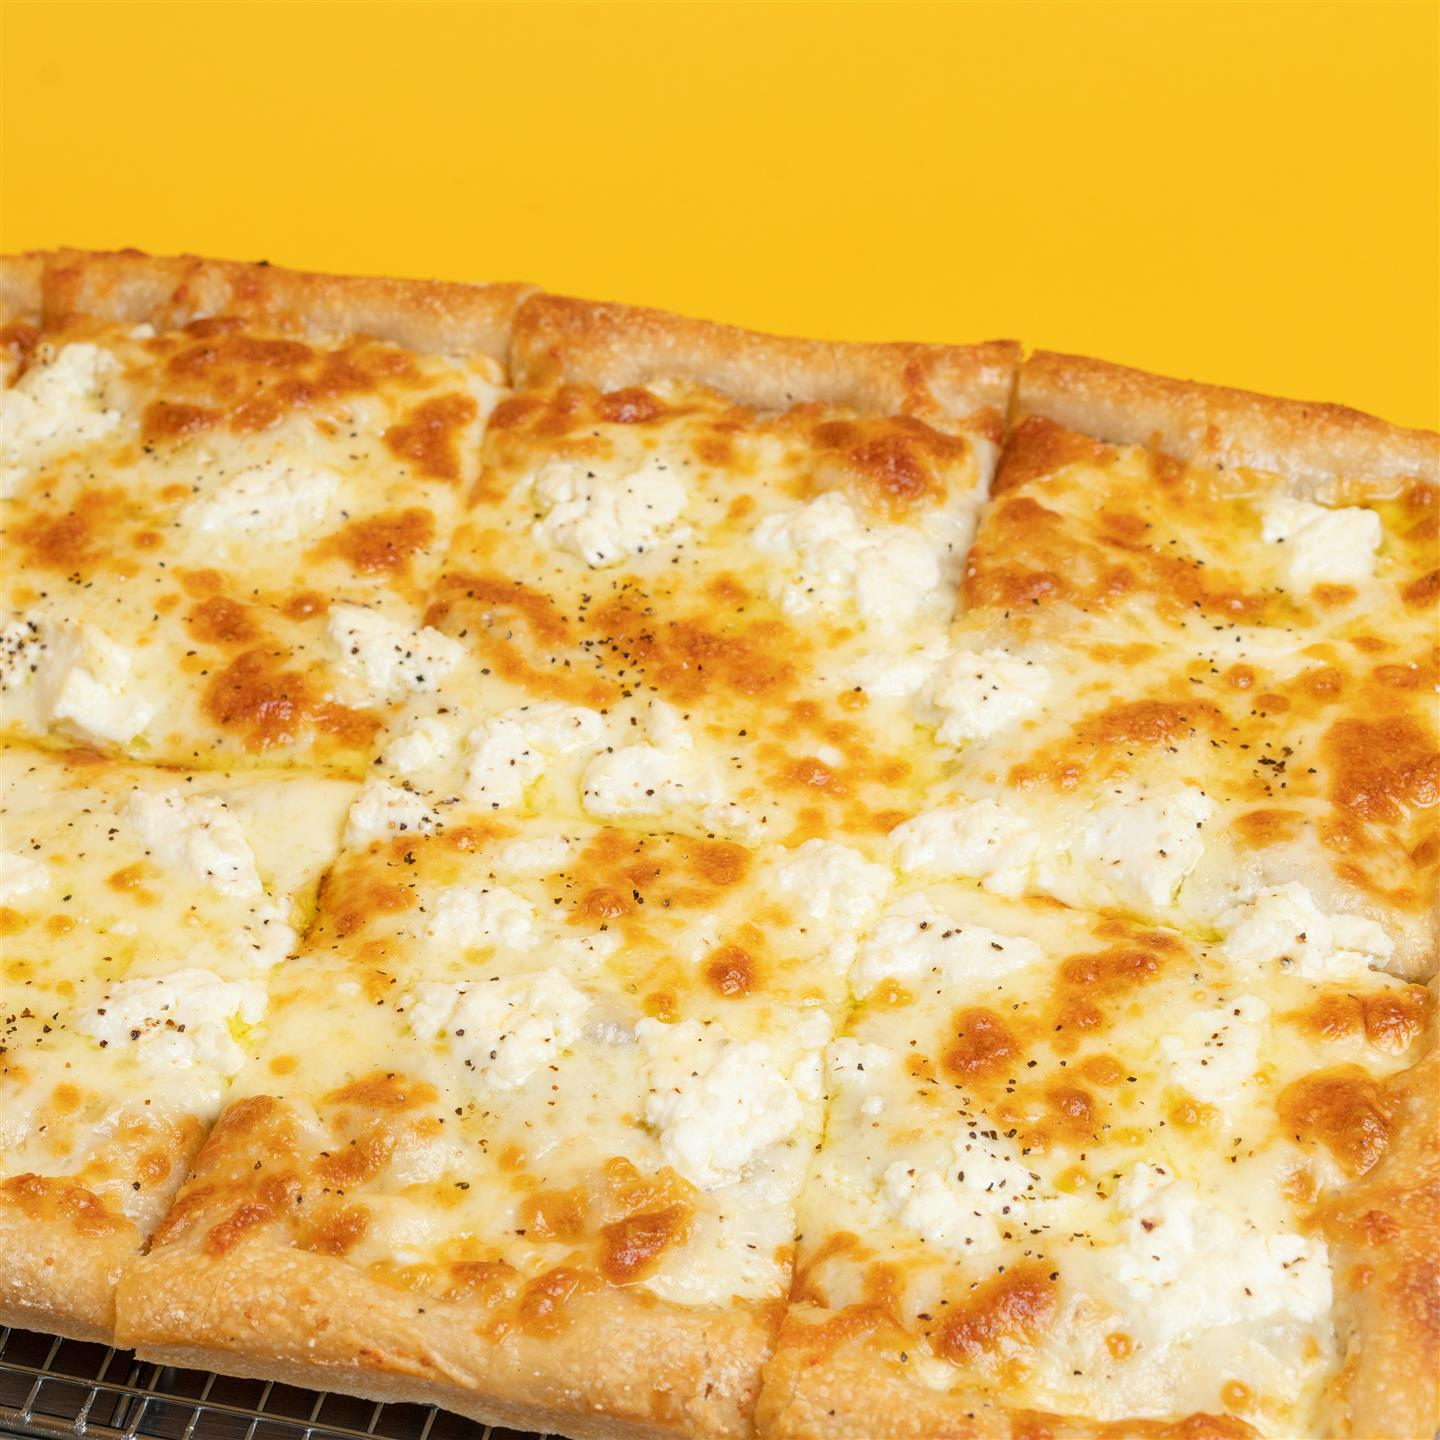 square pie with ricotta and mozzarella cheeses and no sauce